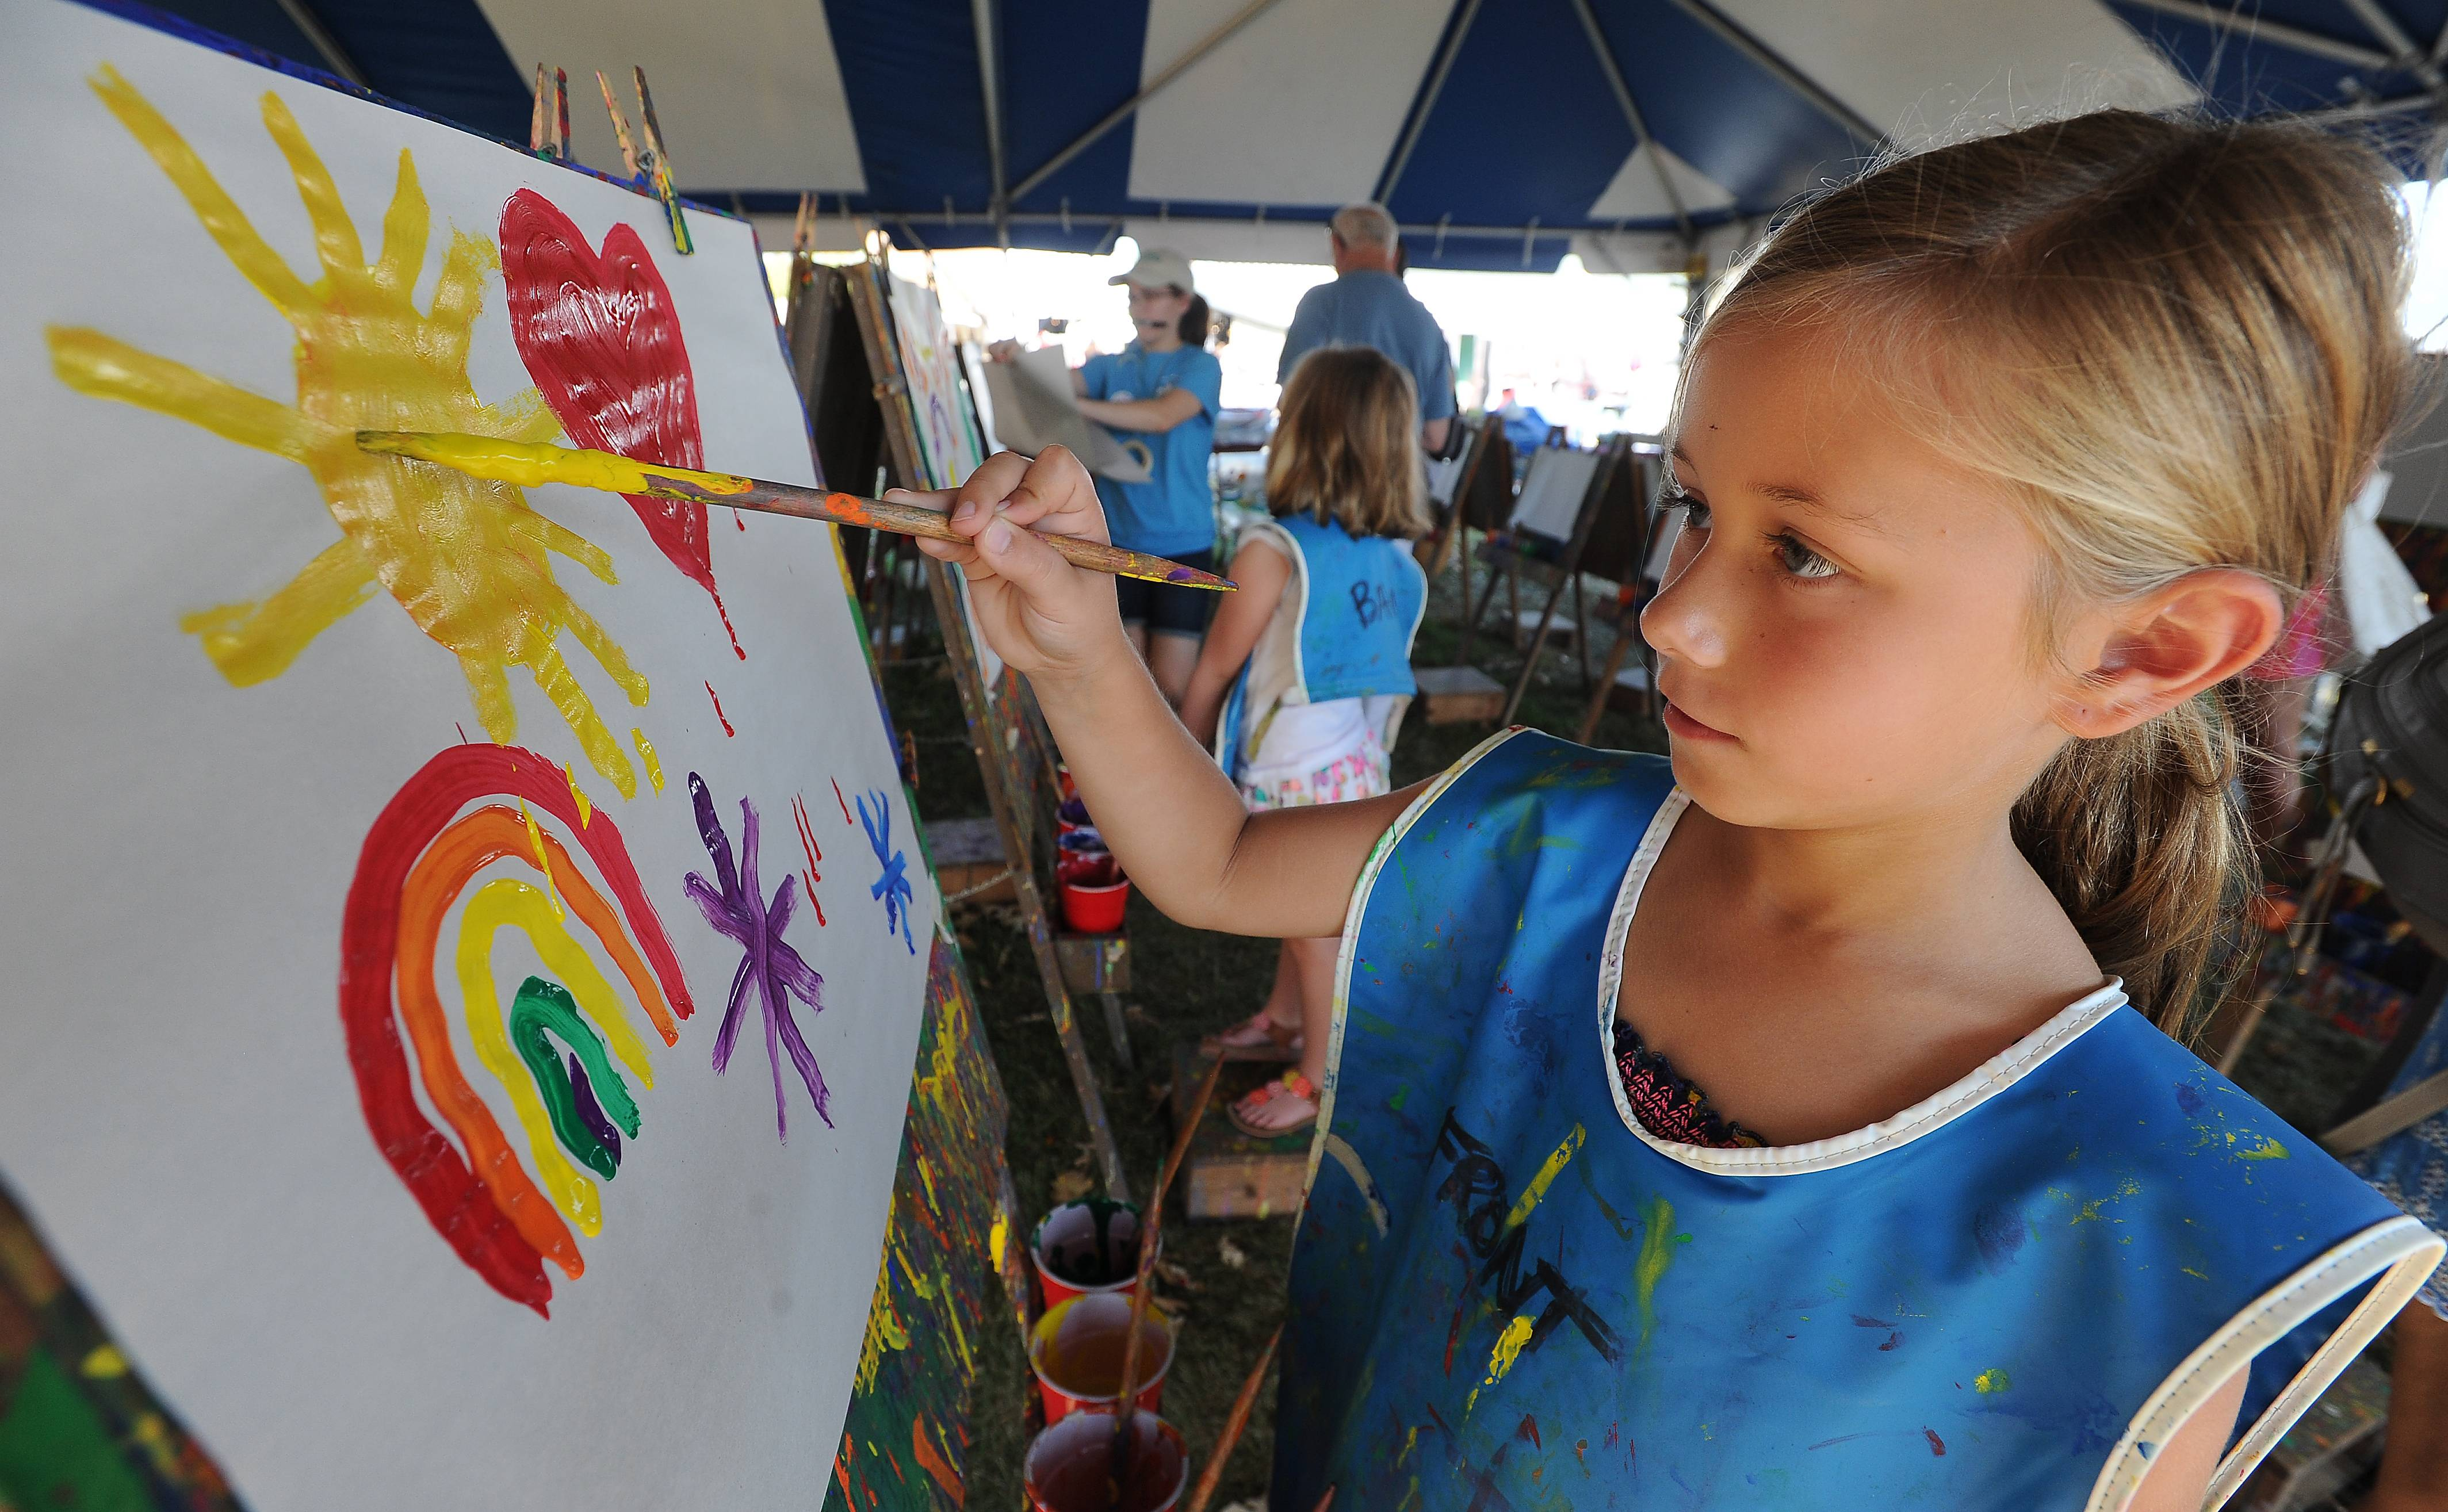 Eleanor Jankowski, 7, of Barrington displays her flair for color at the Art in the Barn festival on Advocate Good Shepherd Hospital grounds in Barrington on Sunday.